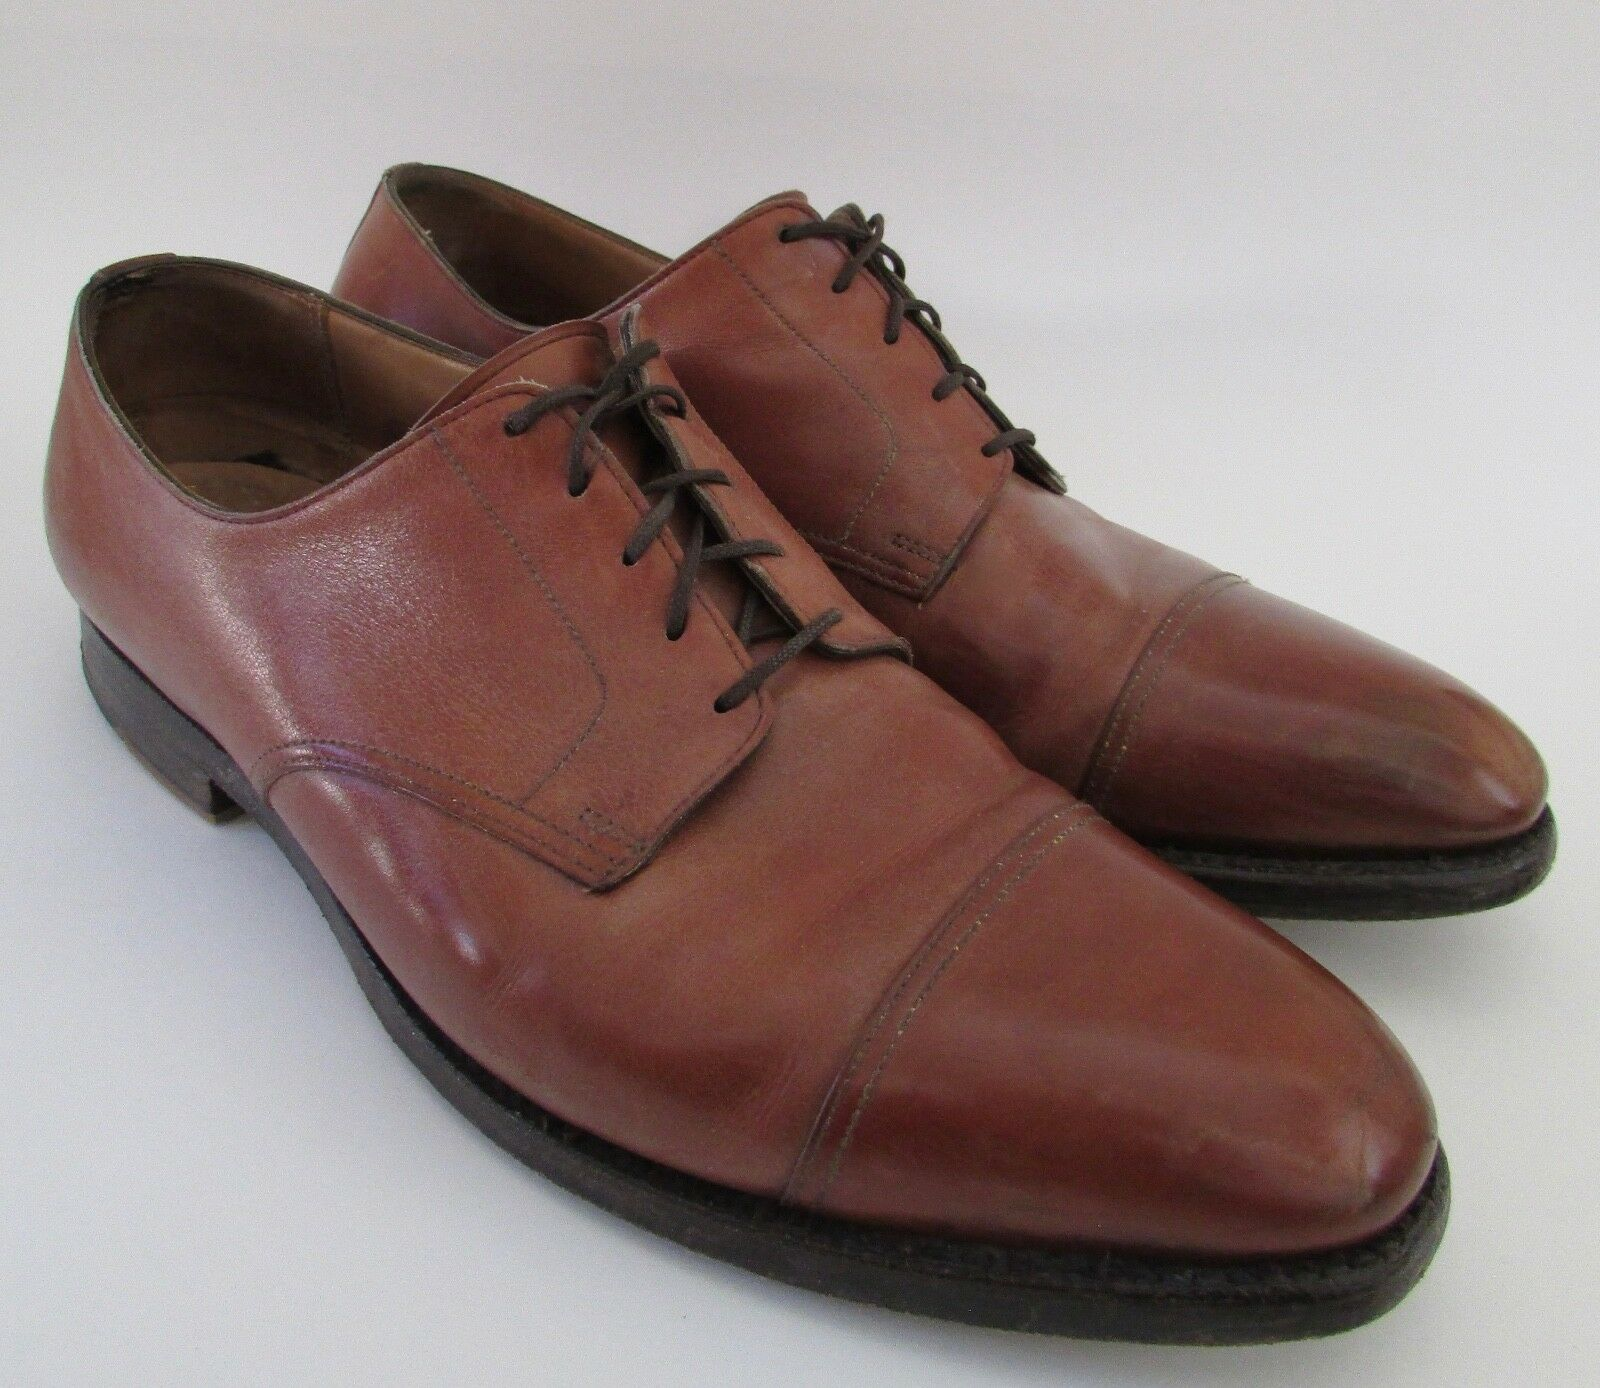 Peal Co. Brooks Bredhers Chestnut Oxford Dress shoes Made in England Size 13D